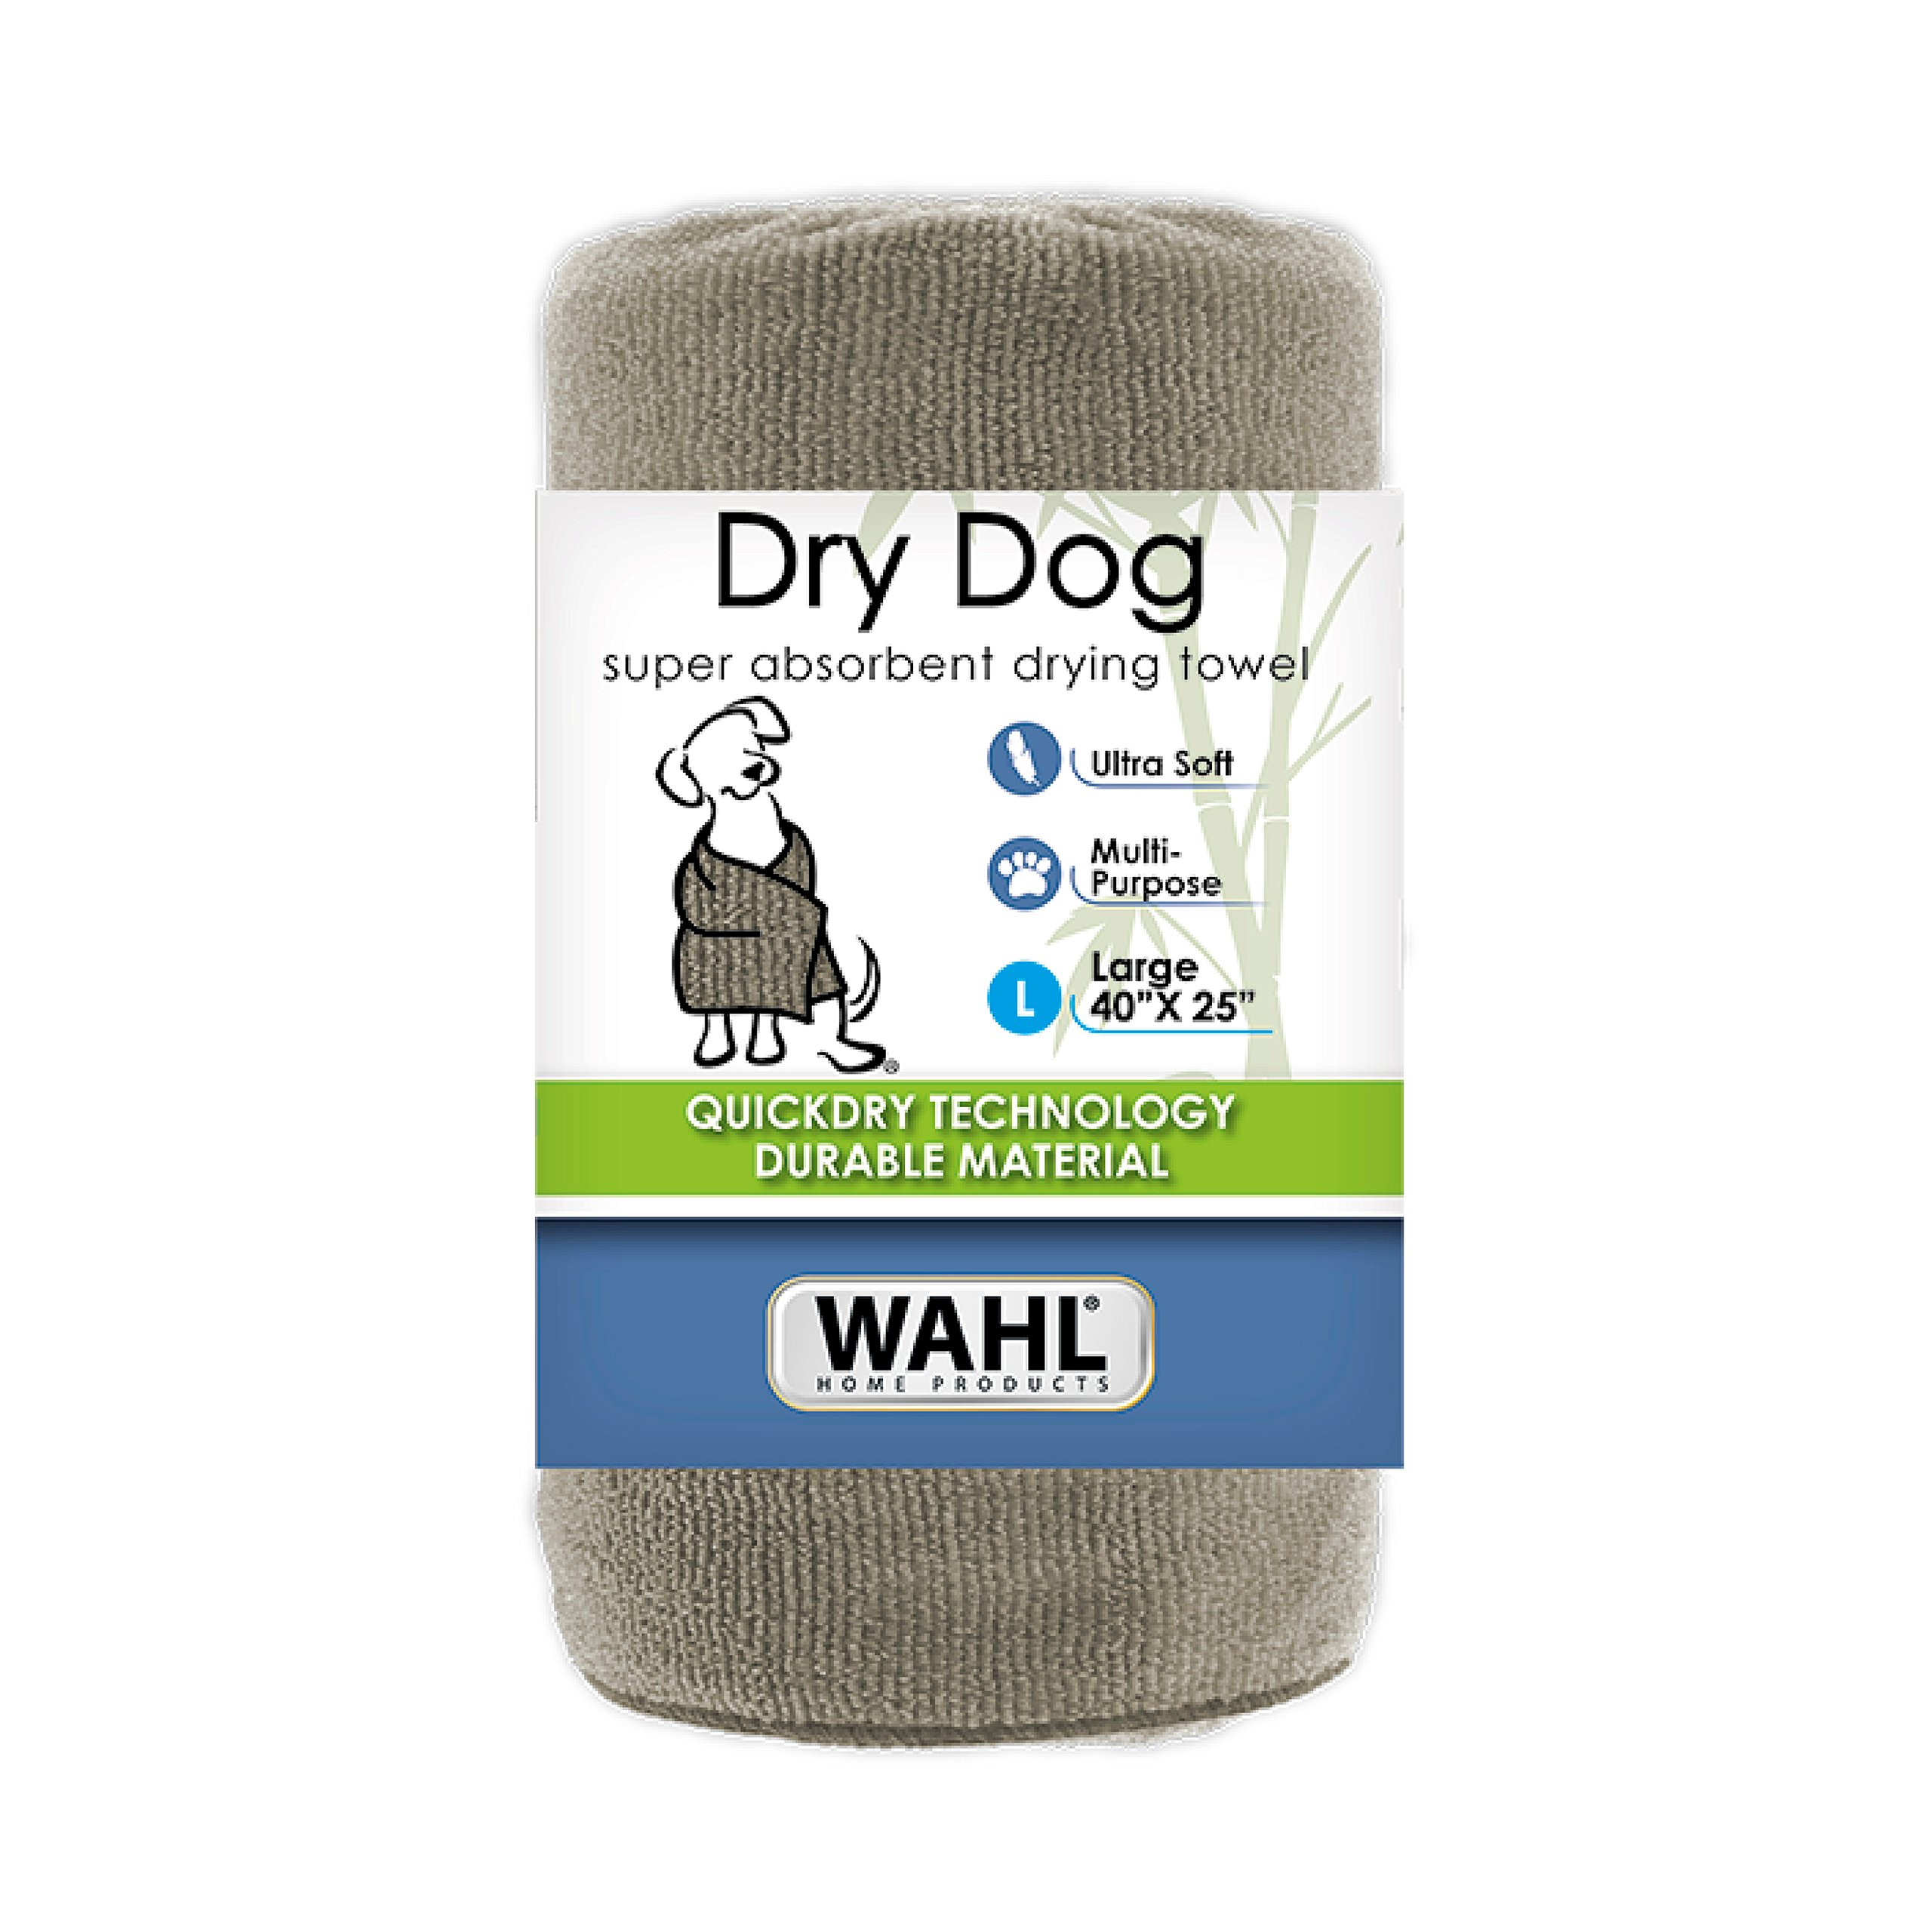 Wahl 40 x 25 Large Drying Dog Towel Tan 858489 Absorbent Soft Fabric Dog Towel for Grooming and Bathing by Wahl (Image #1)